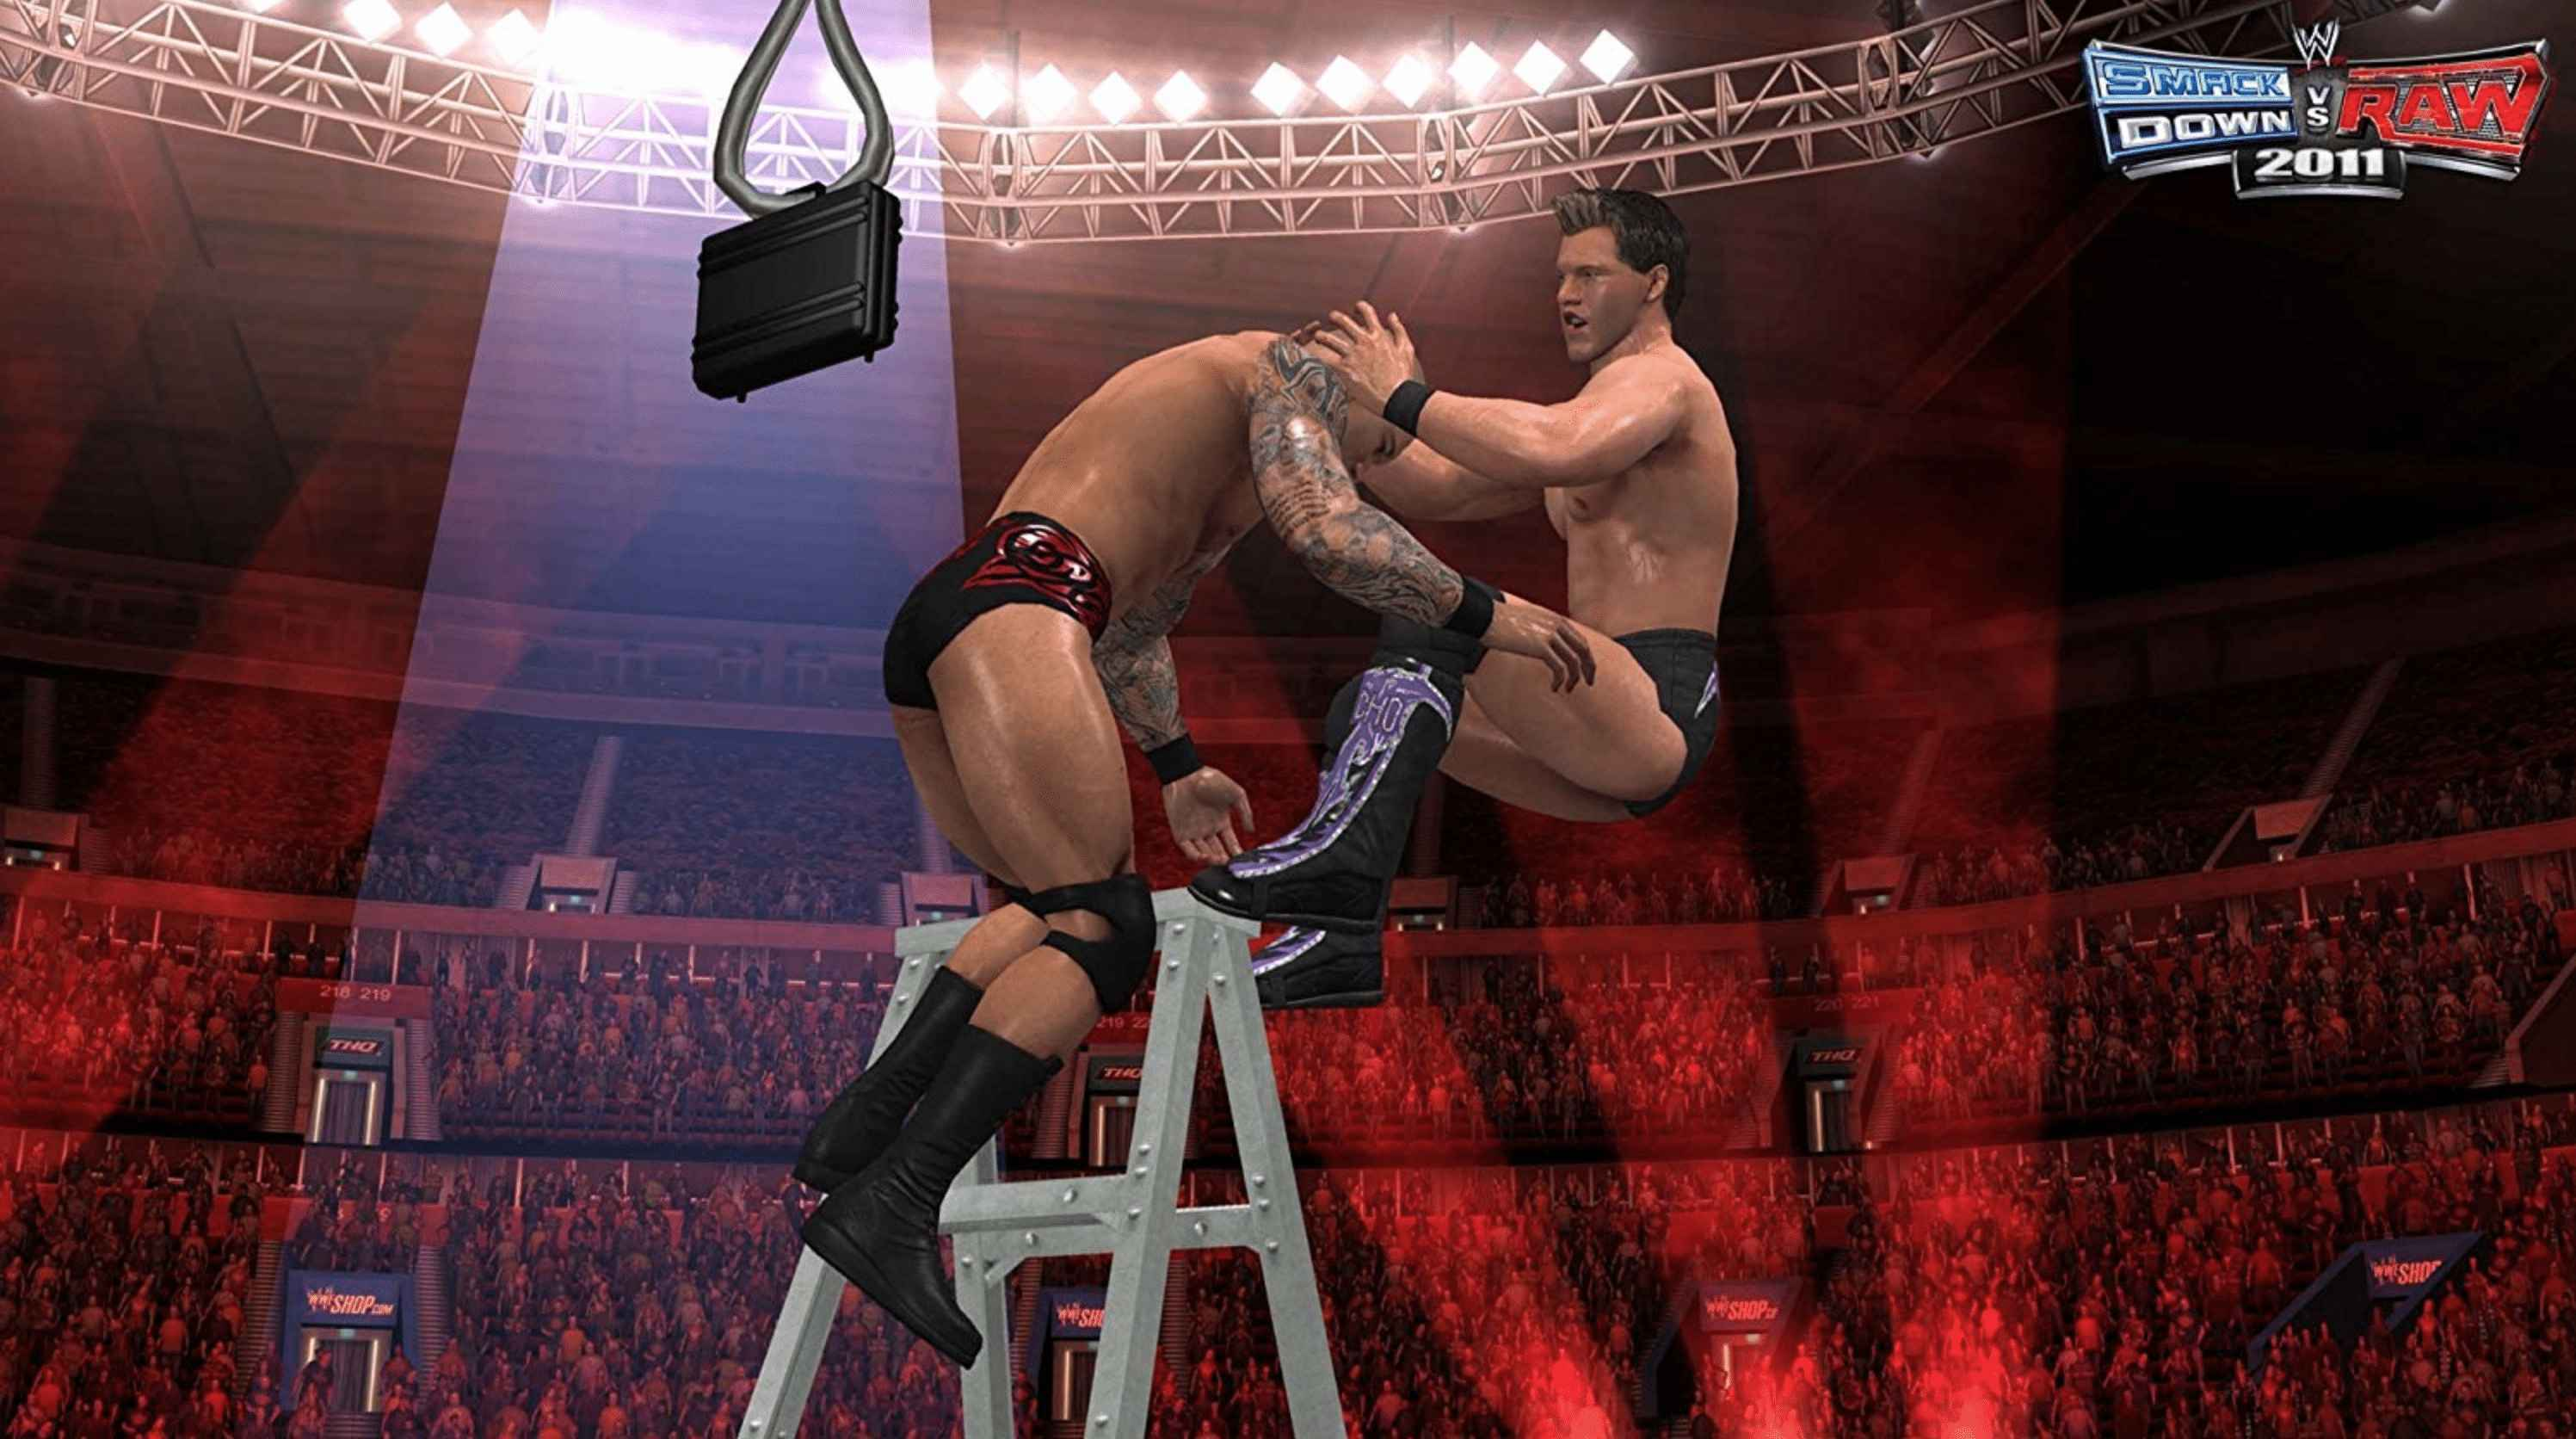 WWE Smackdown Vs Raw 2011 Game For PC Free Download